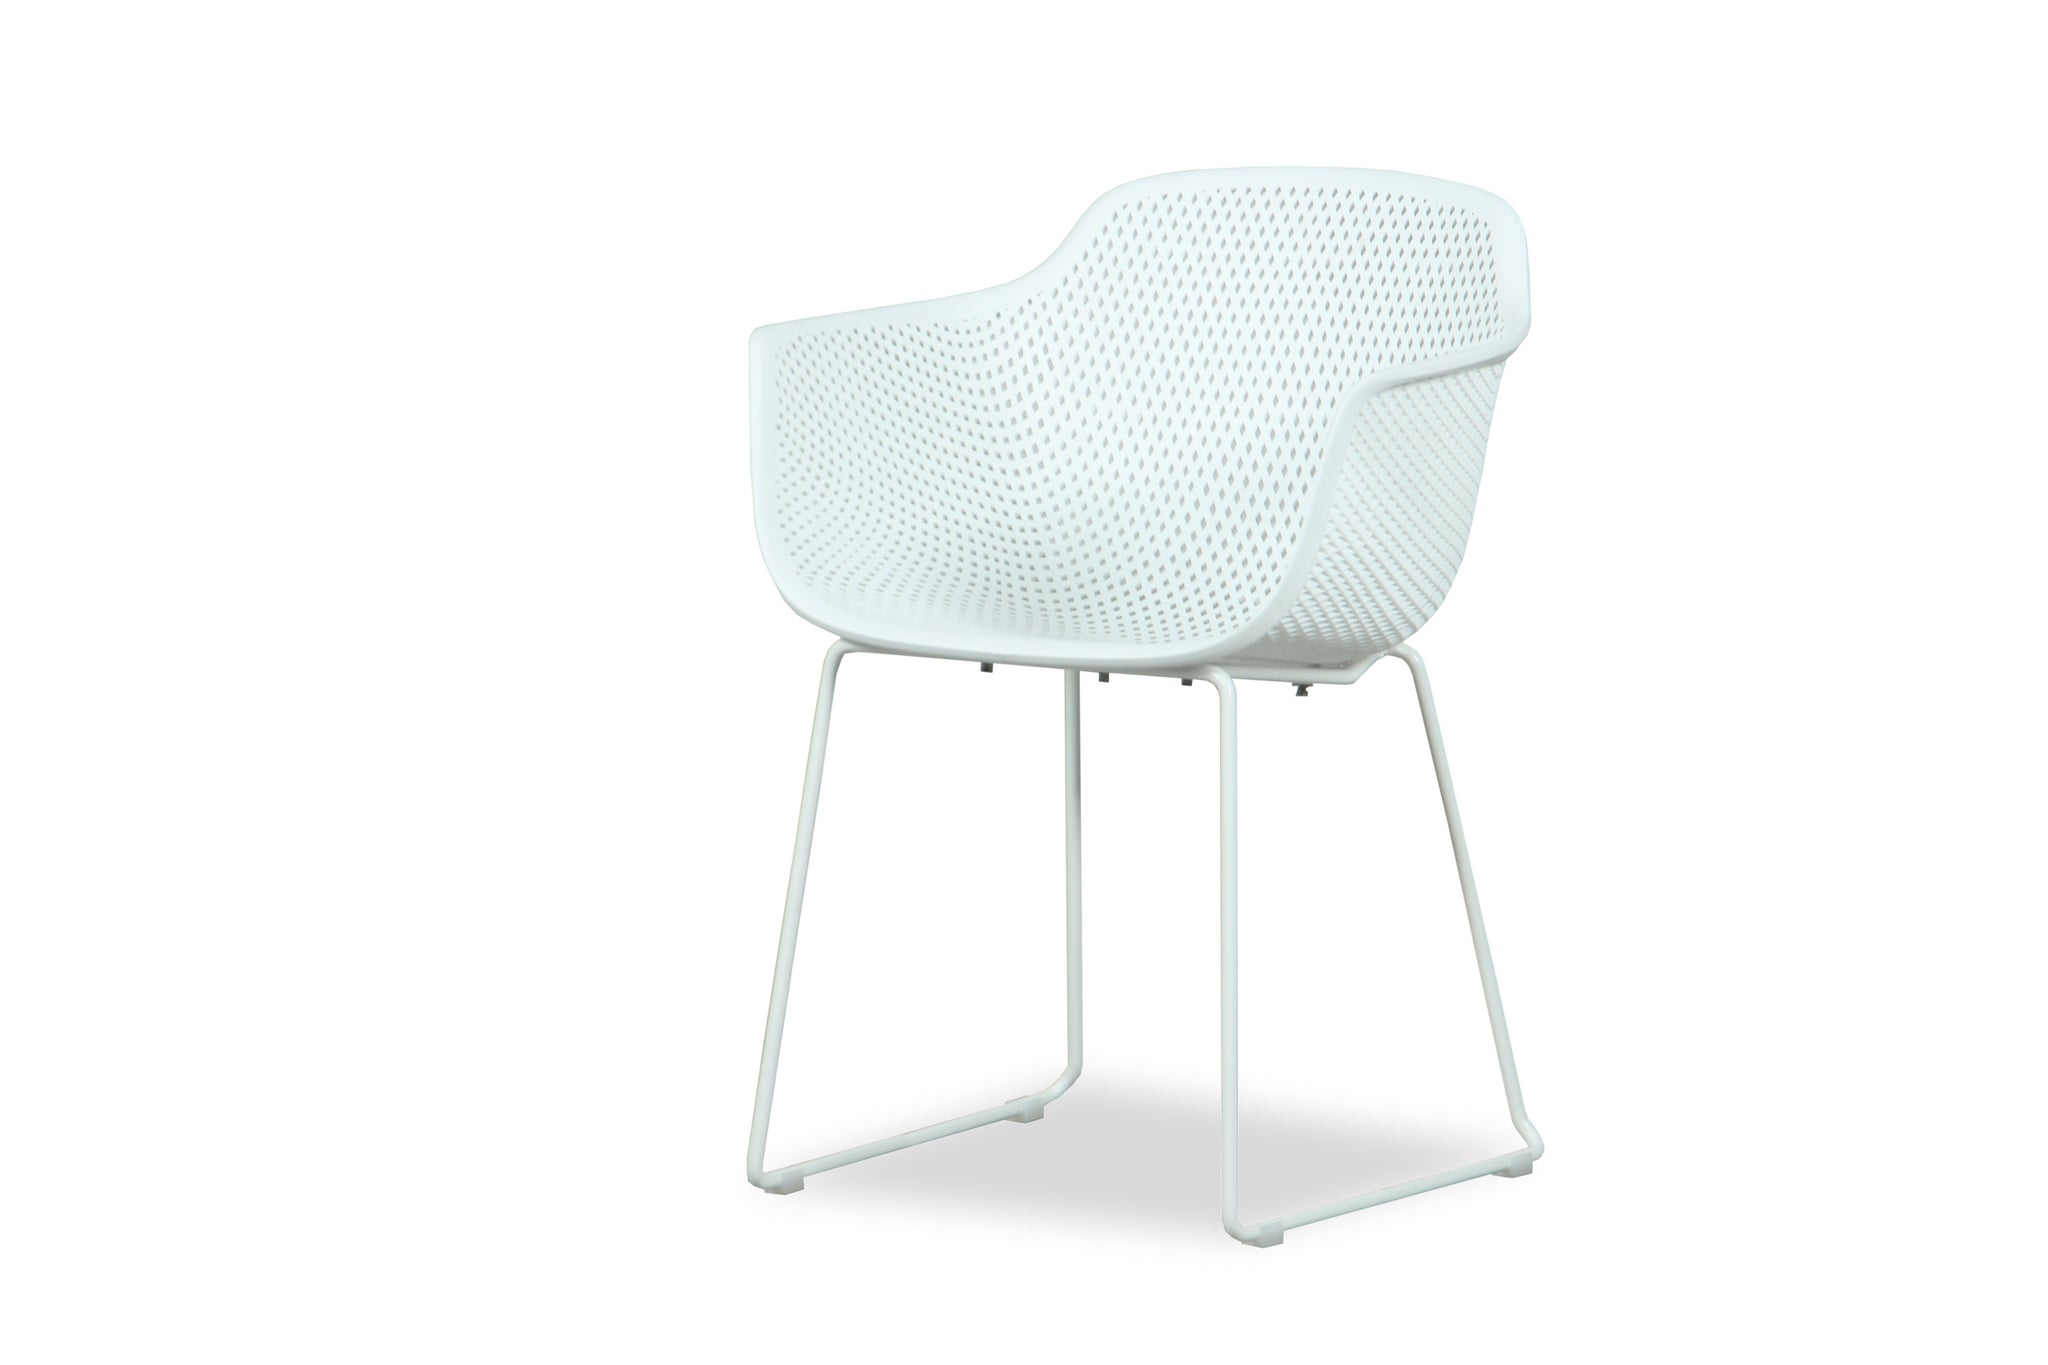 Cove Outdoor Dining Chair - White